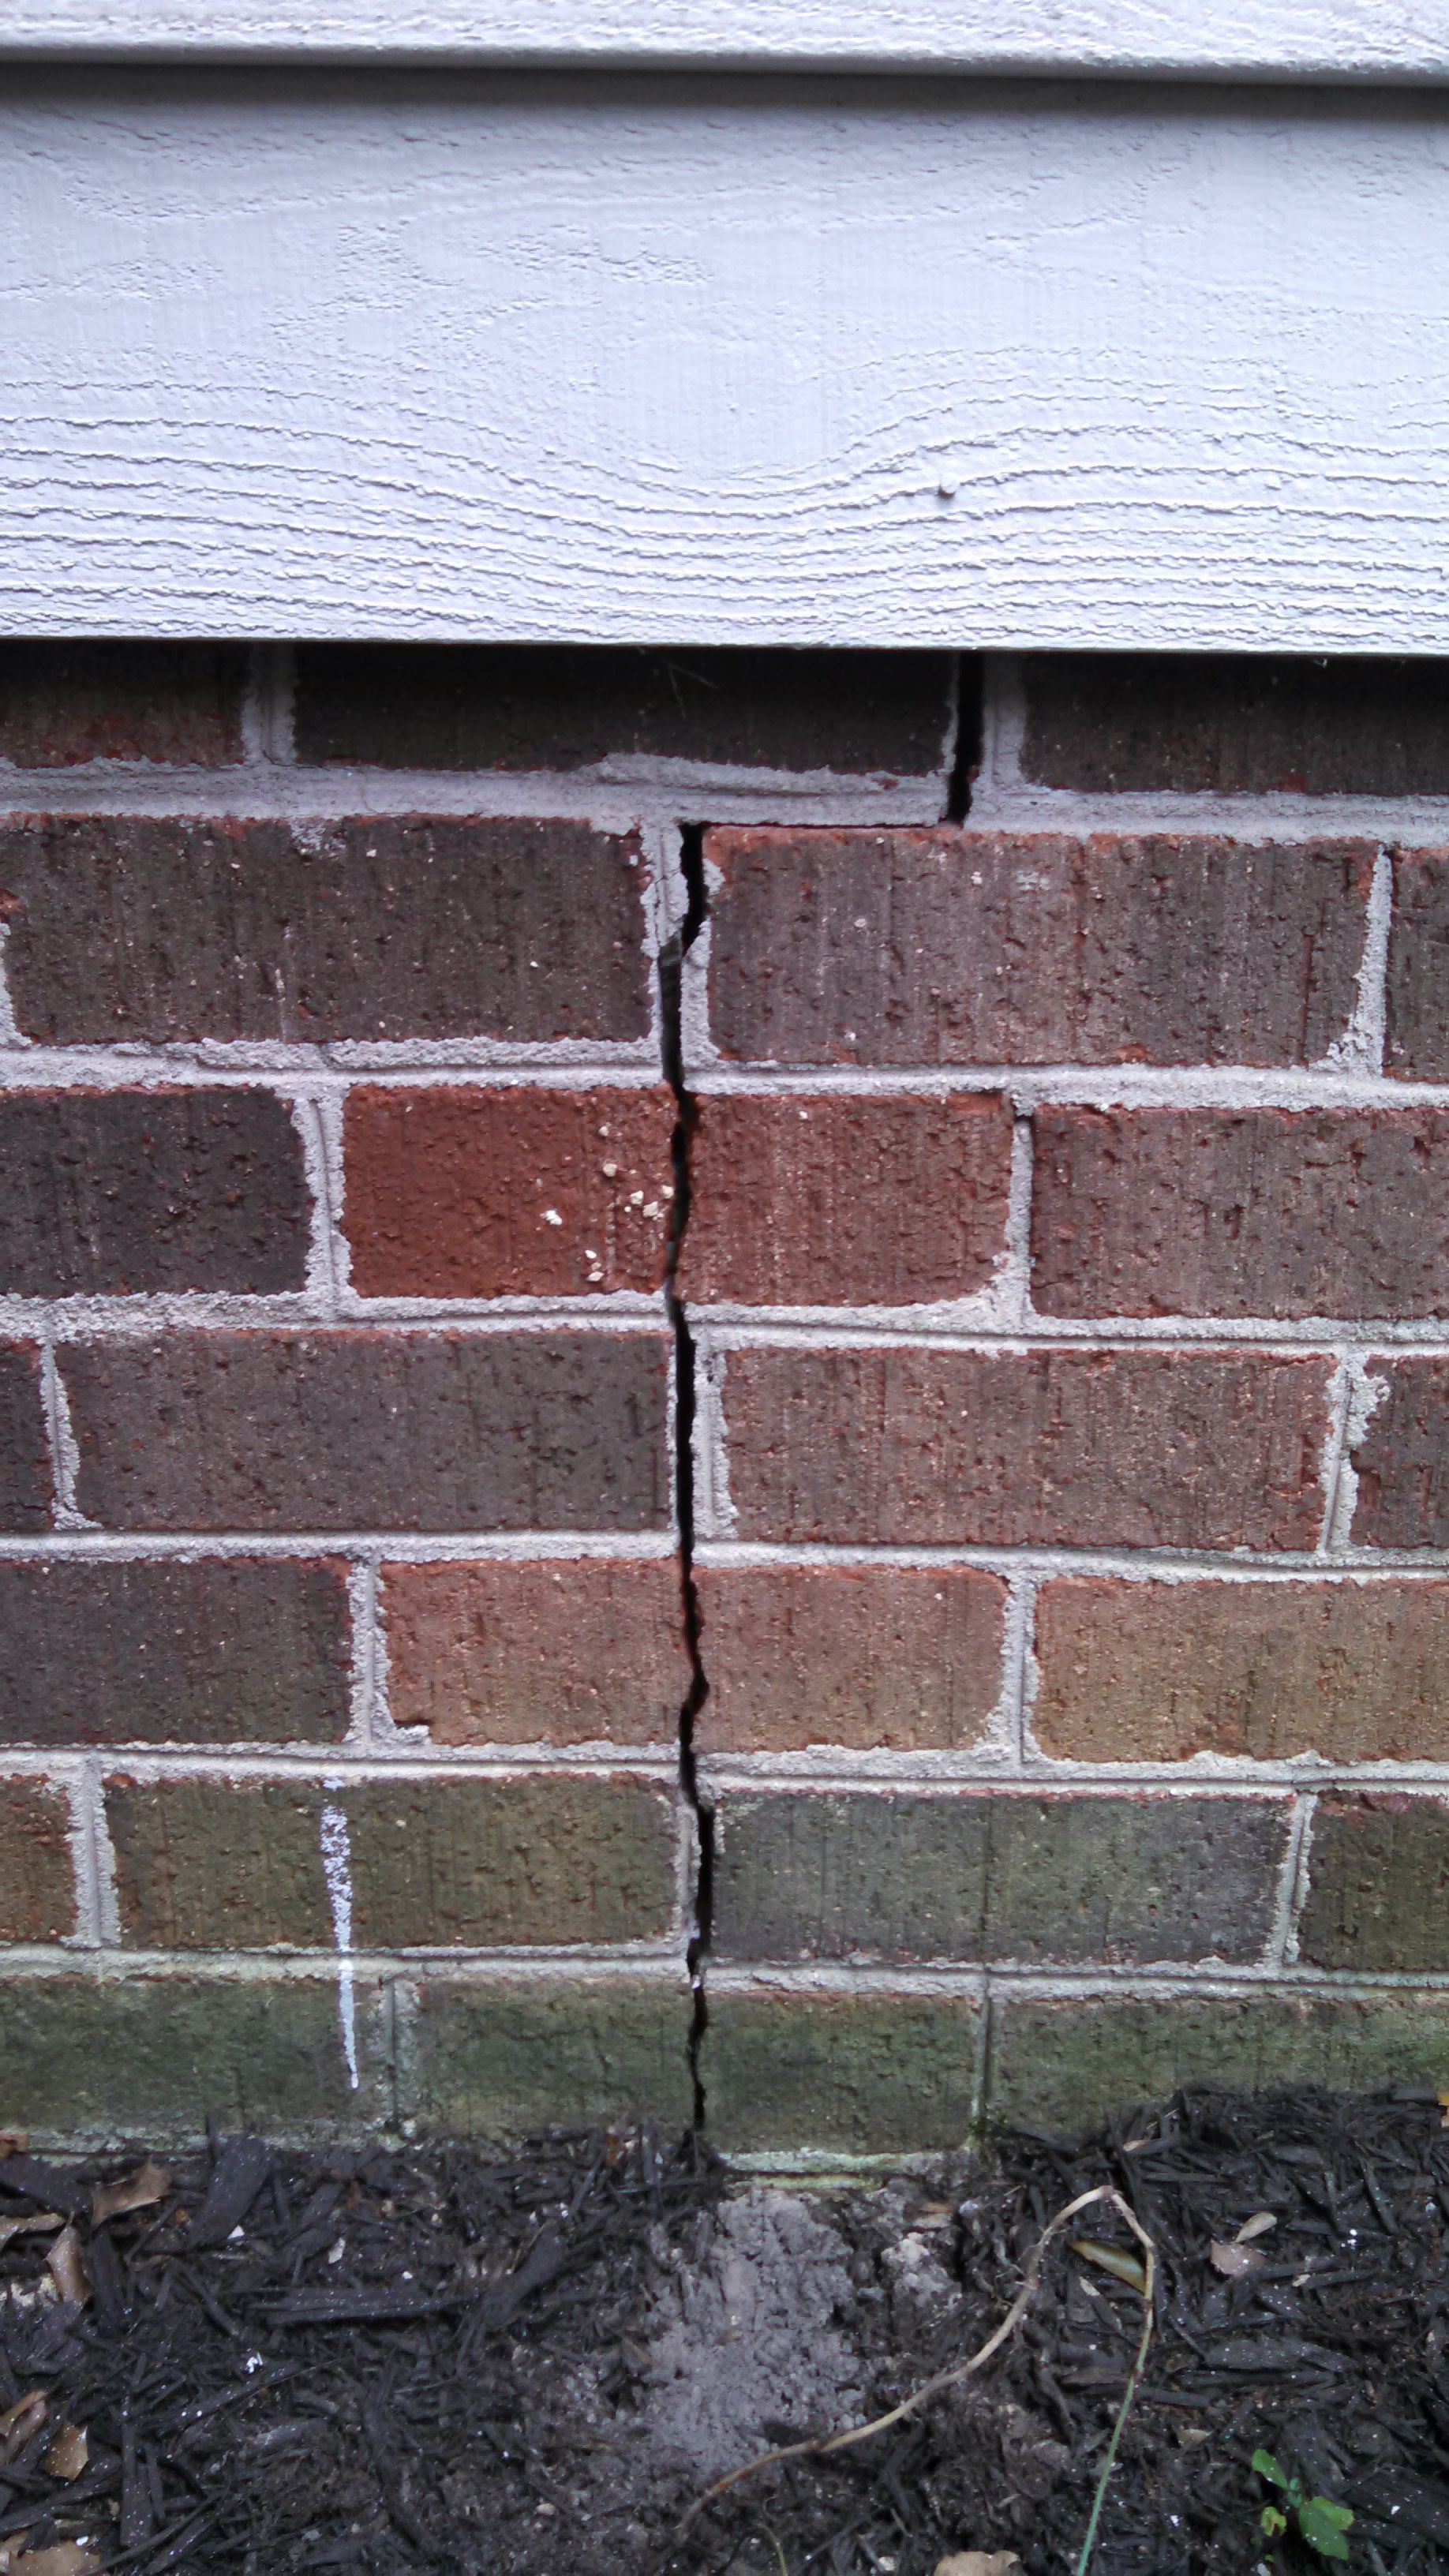 Brick Veneer Accent Wall I Have A Crack In The Brick Veneer Of The Exterior